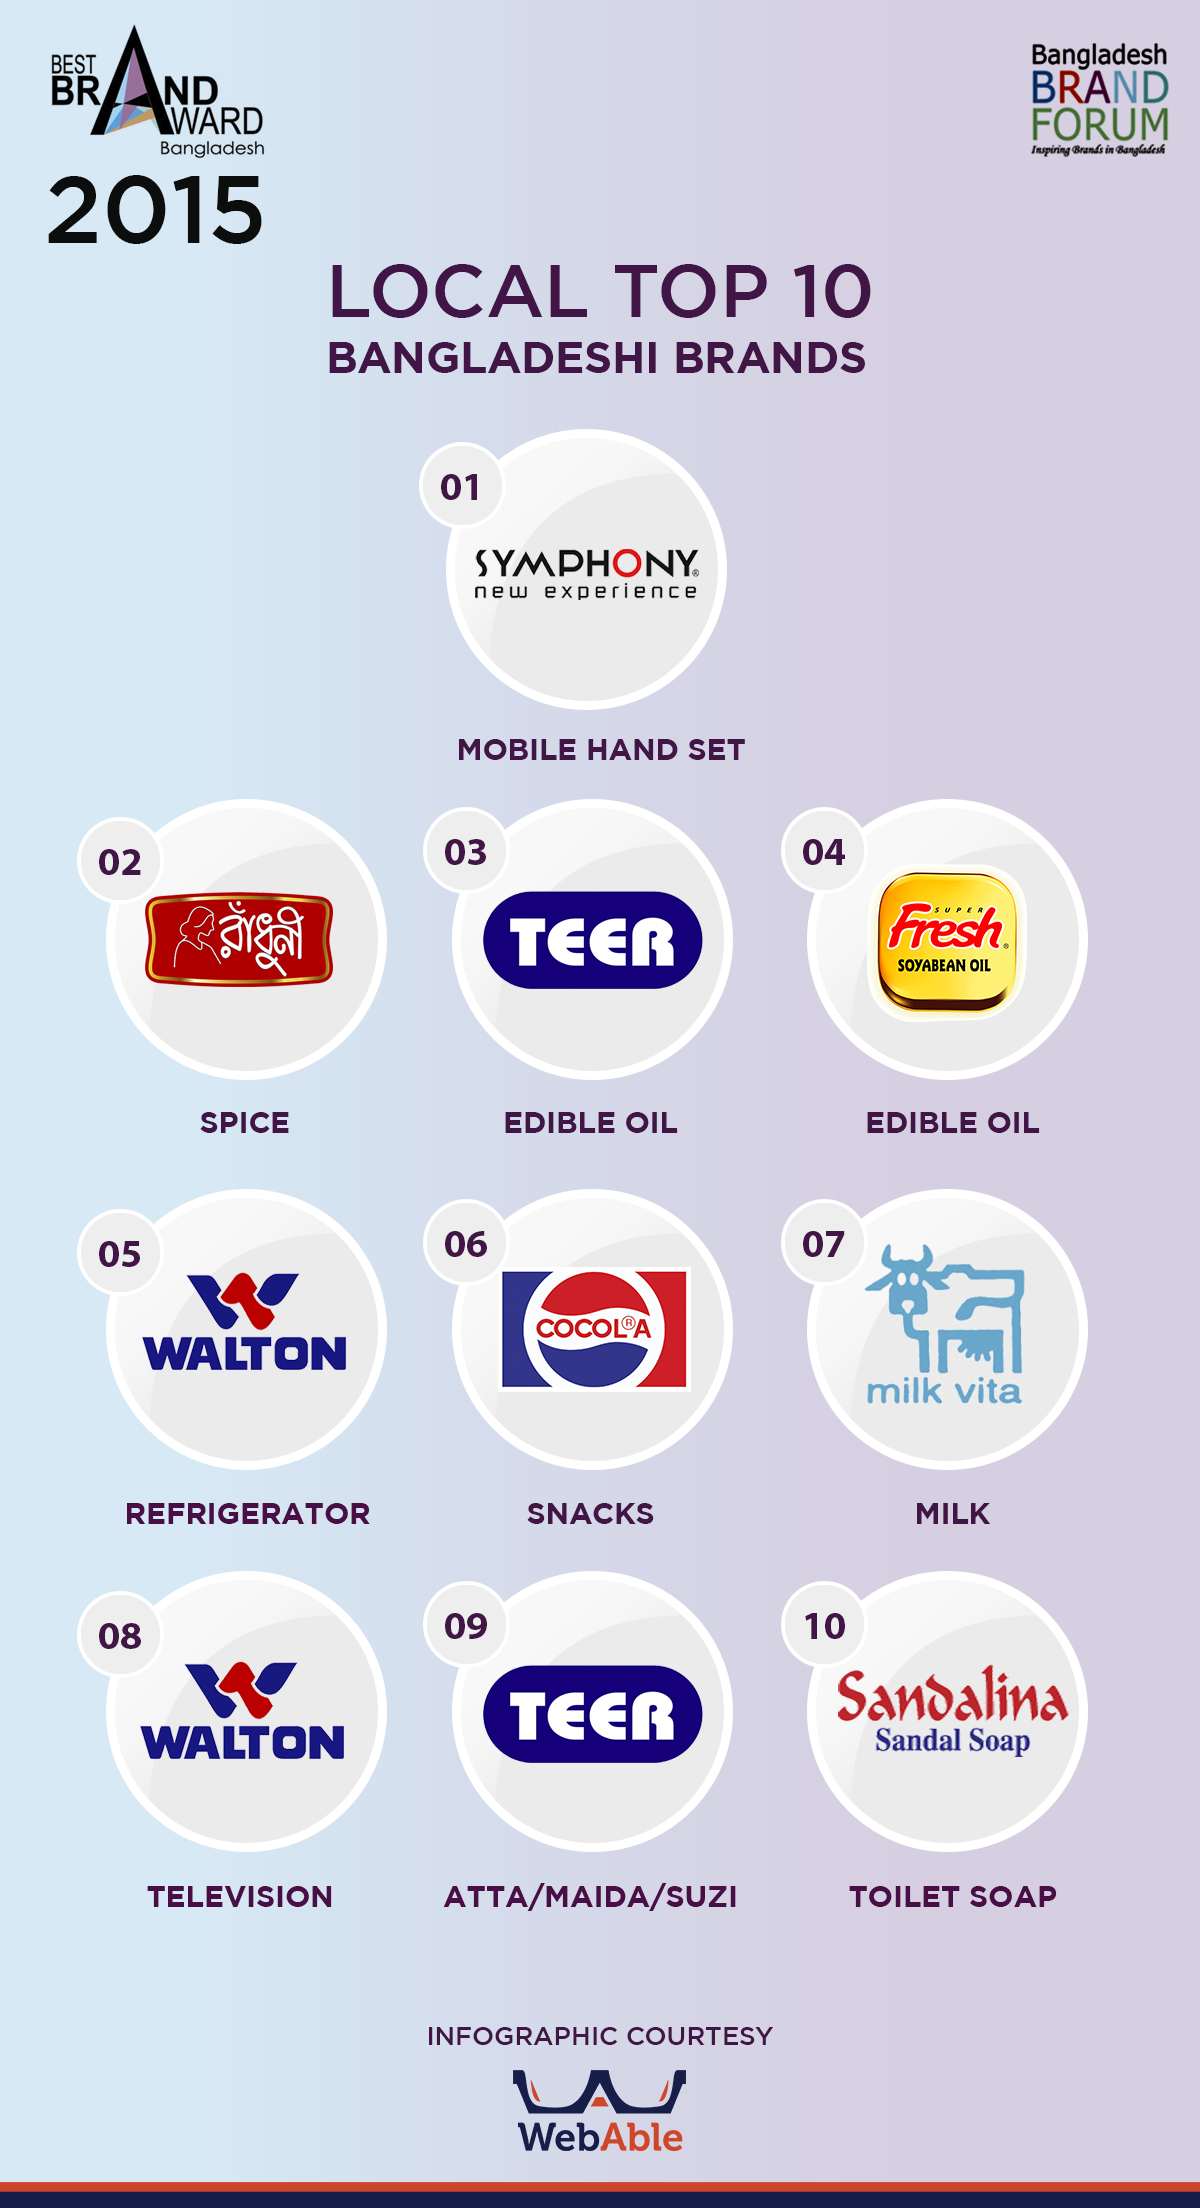 Top 10 Bangladeshi Brands - 2015 [Infographic] - Webable Digital - Best Brand Award - Bangladesh Brand Forum